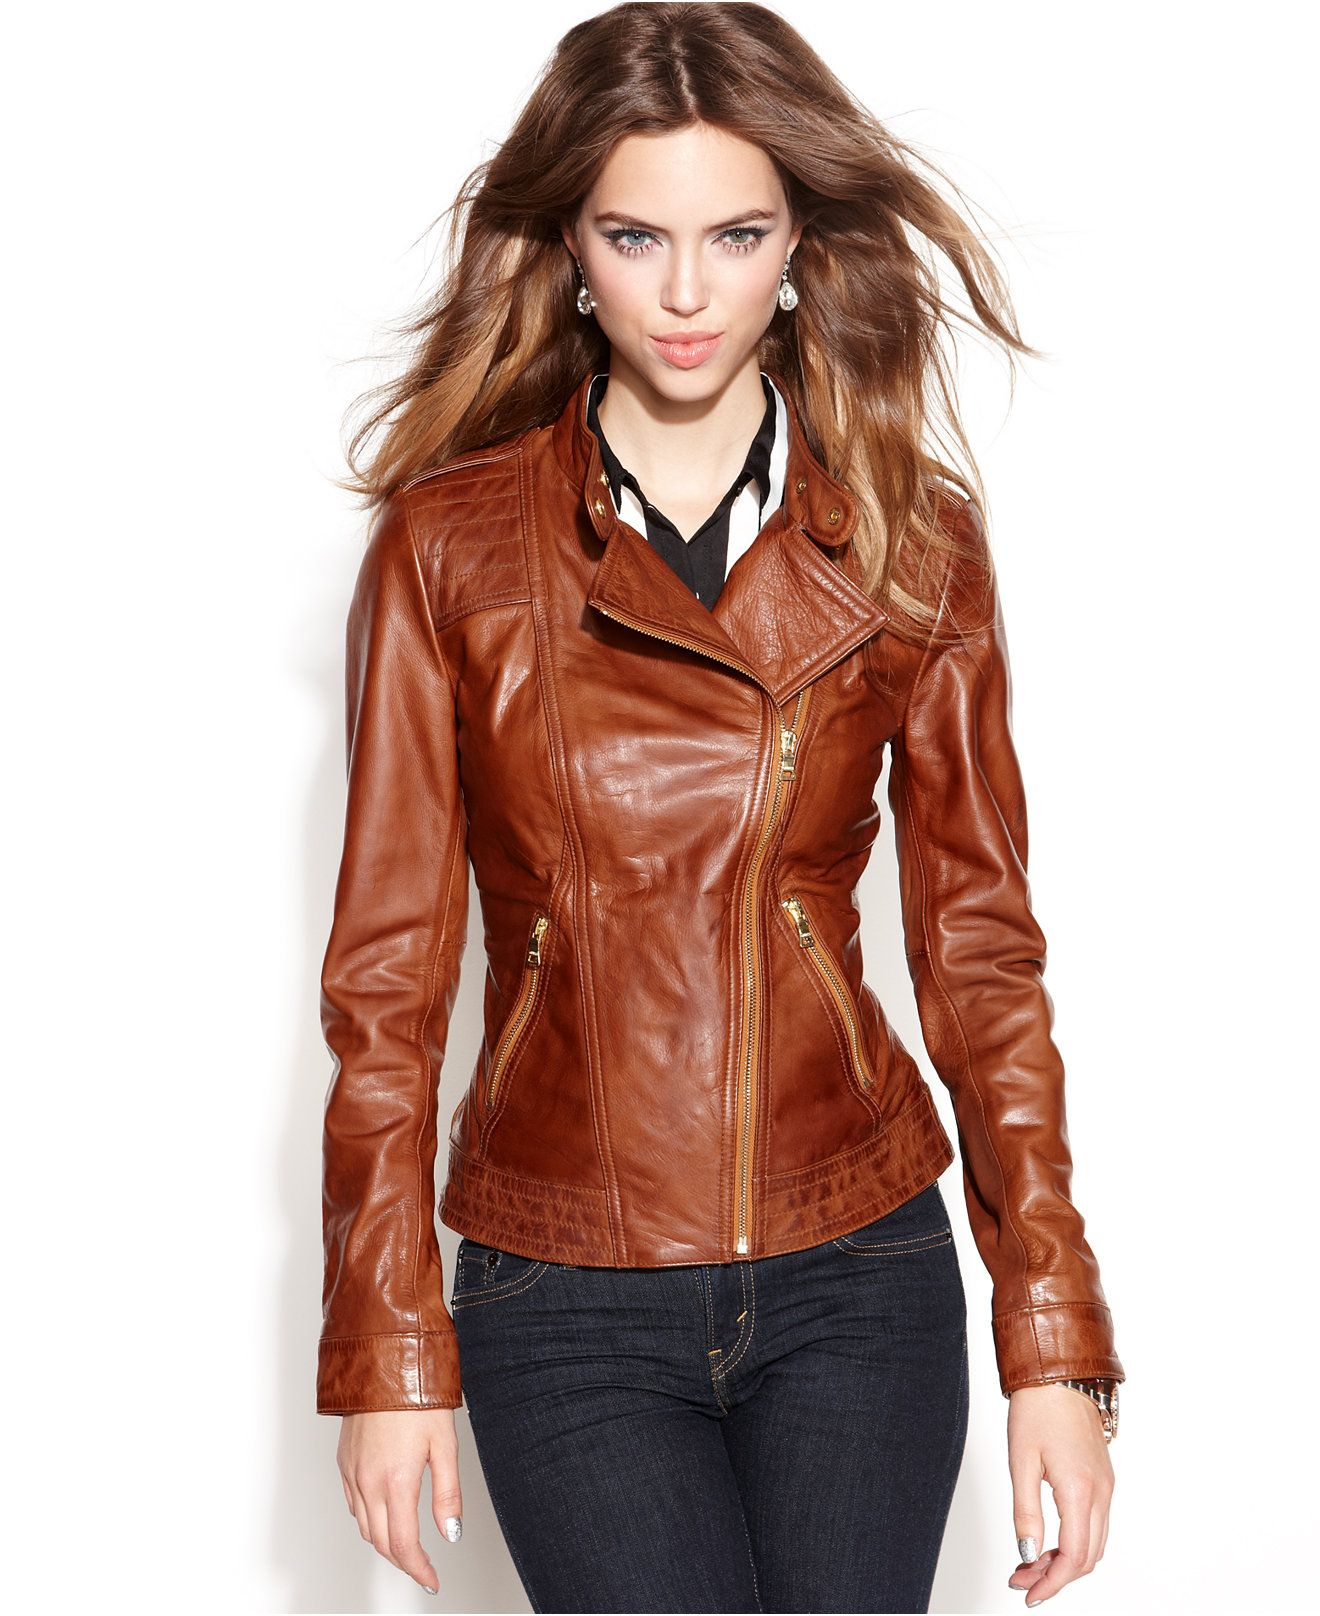 Asymmetrical Jackets Blazers Guess Jacket Front amp; Leather Zip Xfqn4aO